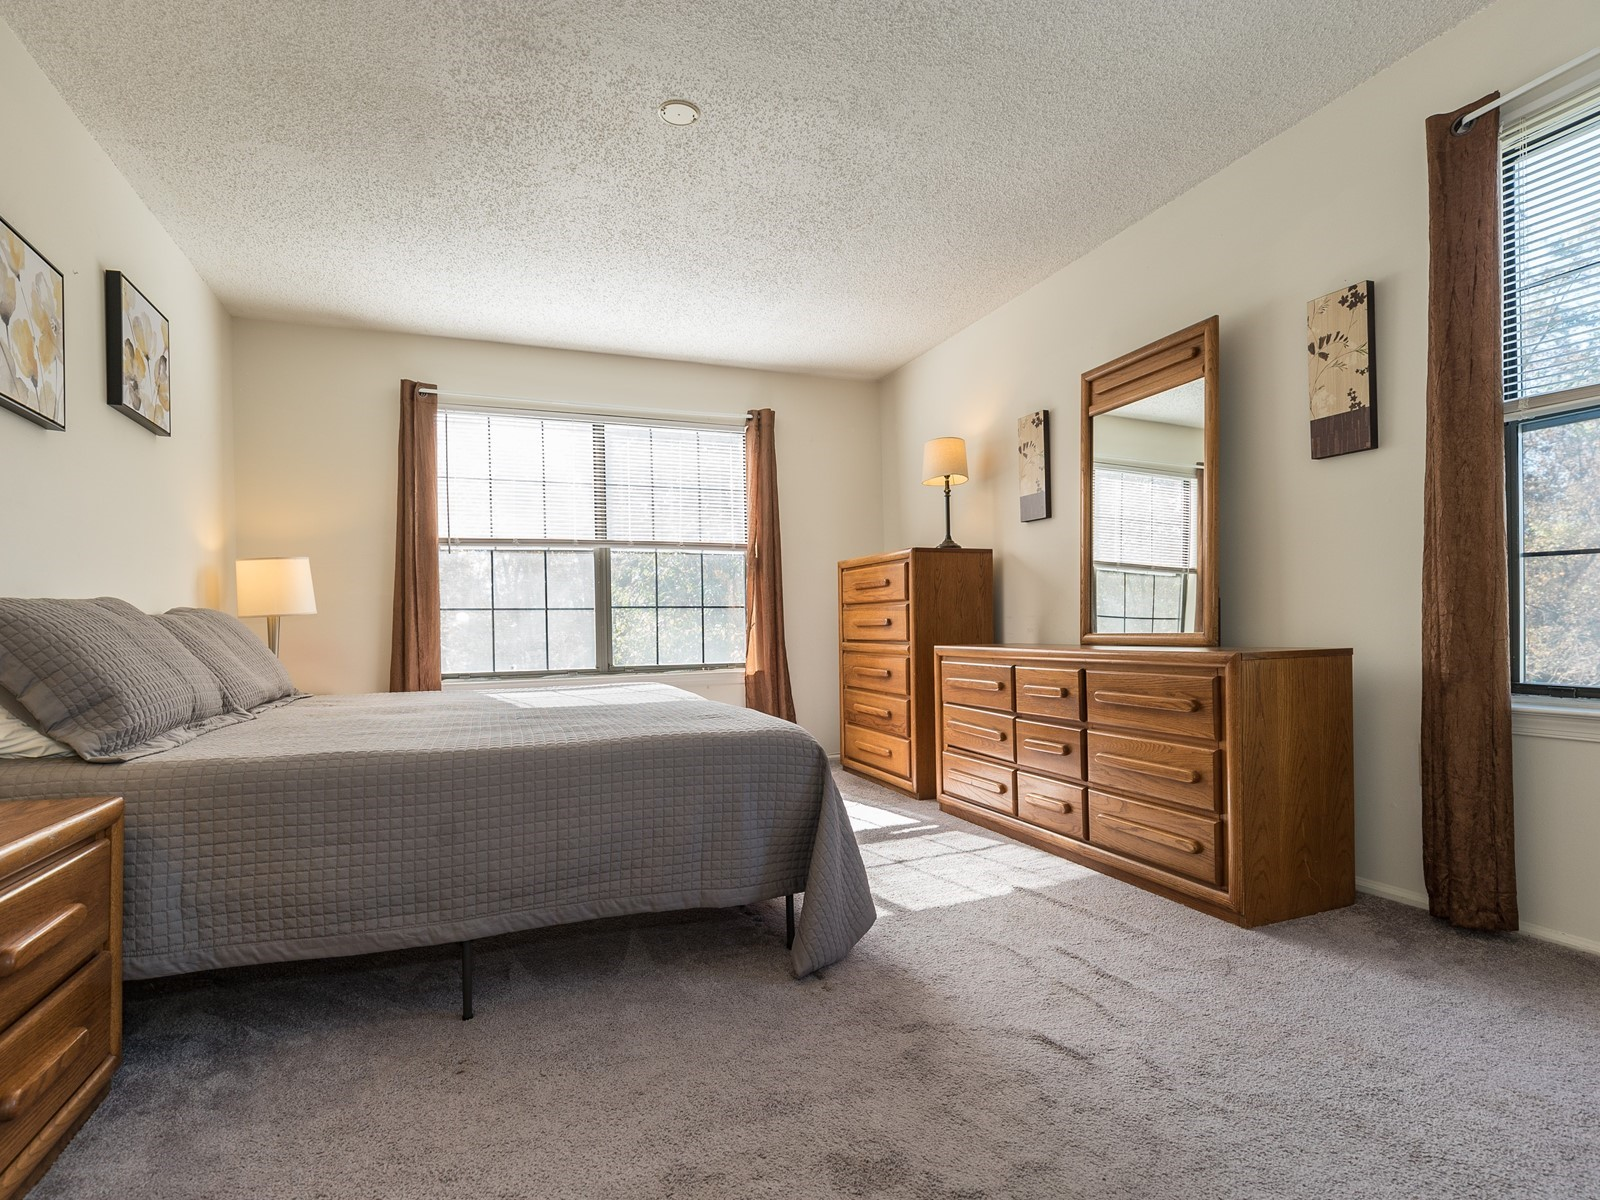 Piscataway 260 short term rental Master bedroom with large bed, nightstand and two dressers